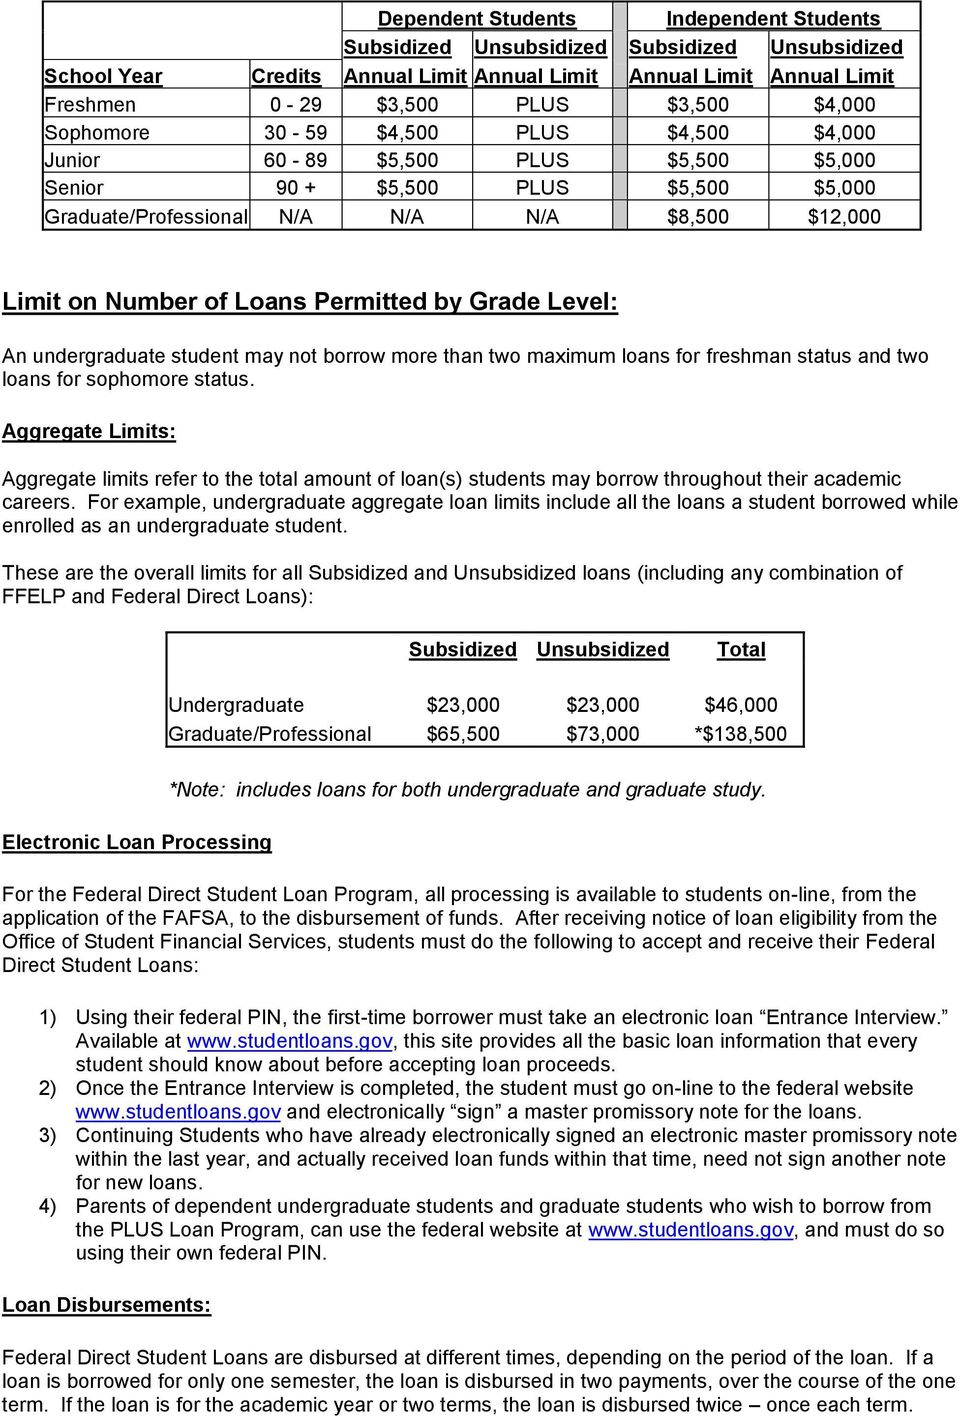 Permitted by Grade Level: An undergraduate student may not borrow more than two maximum loans for freshman status and two loans for sophomore status.